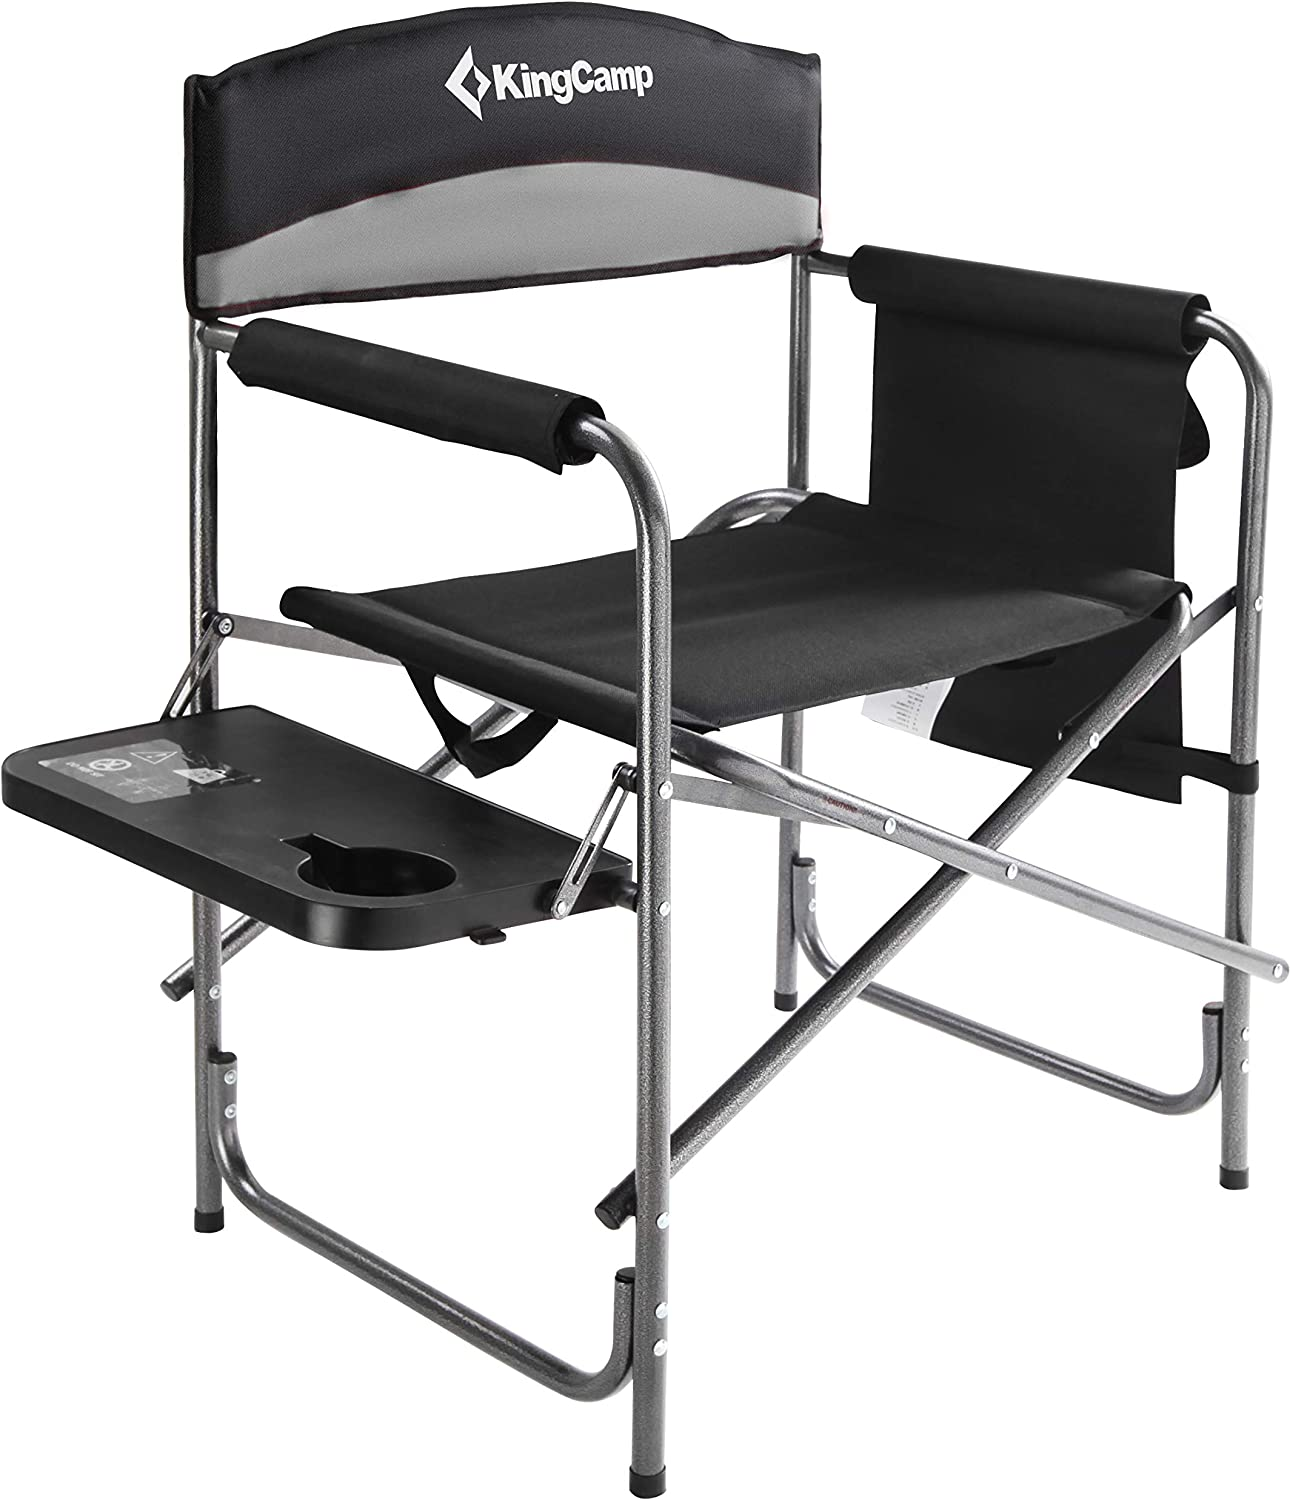 KingCamp Heavy Duty Camping Folding Director Chair Oversize Padded Seat with Side Table and Side Pockets, Supports 396 lbs (Black/Medium Grey) : Sports & Outdoors